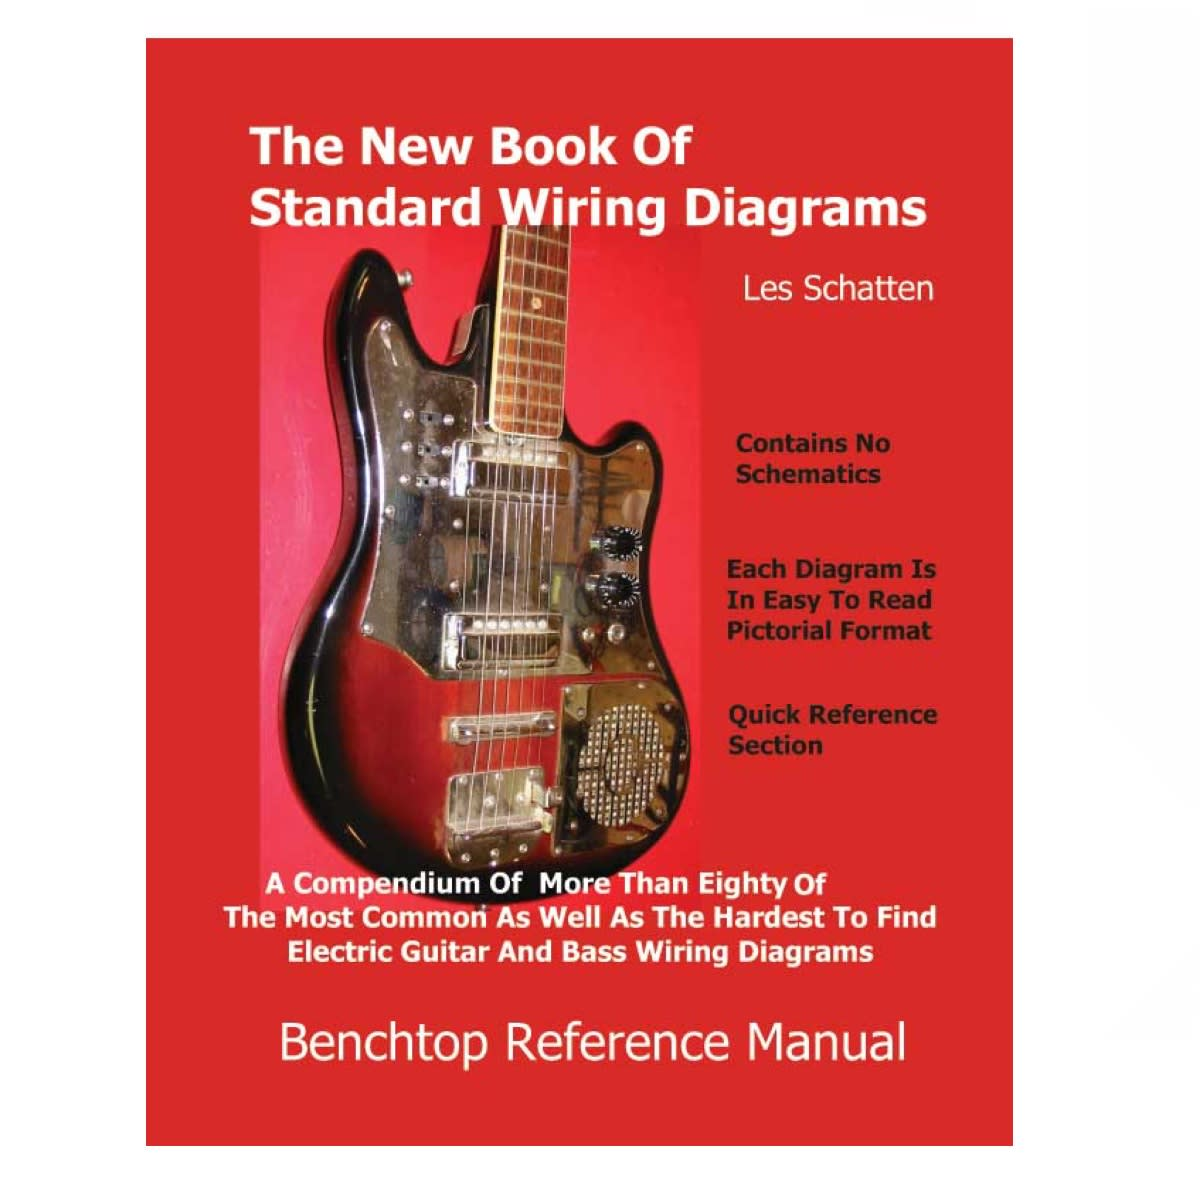 The New Book of Standard Wiring Diagrams | Reverb